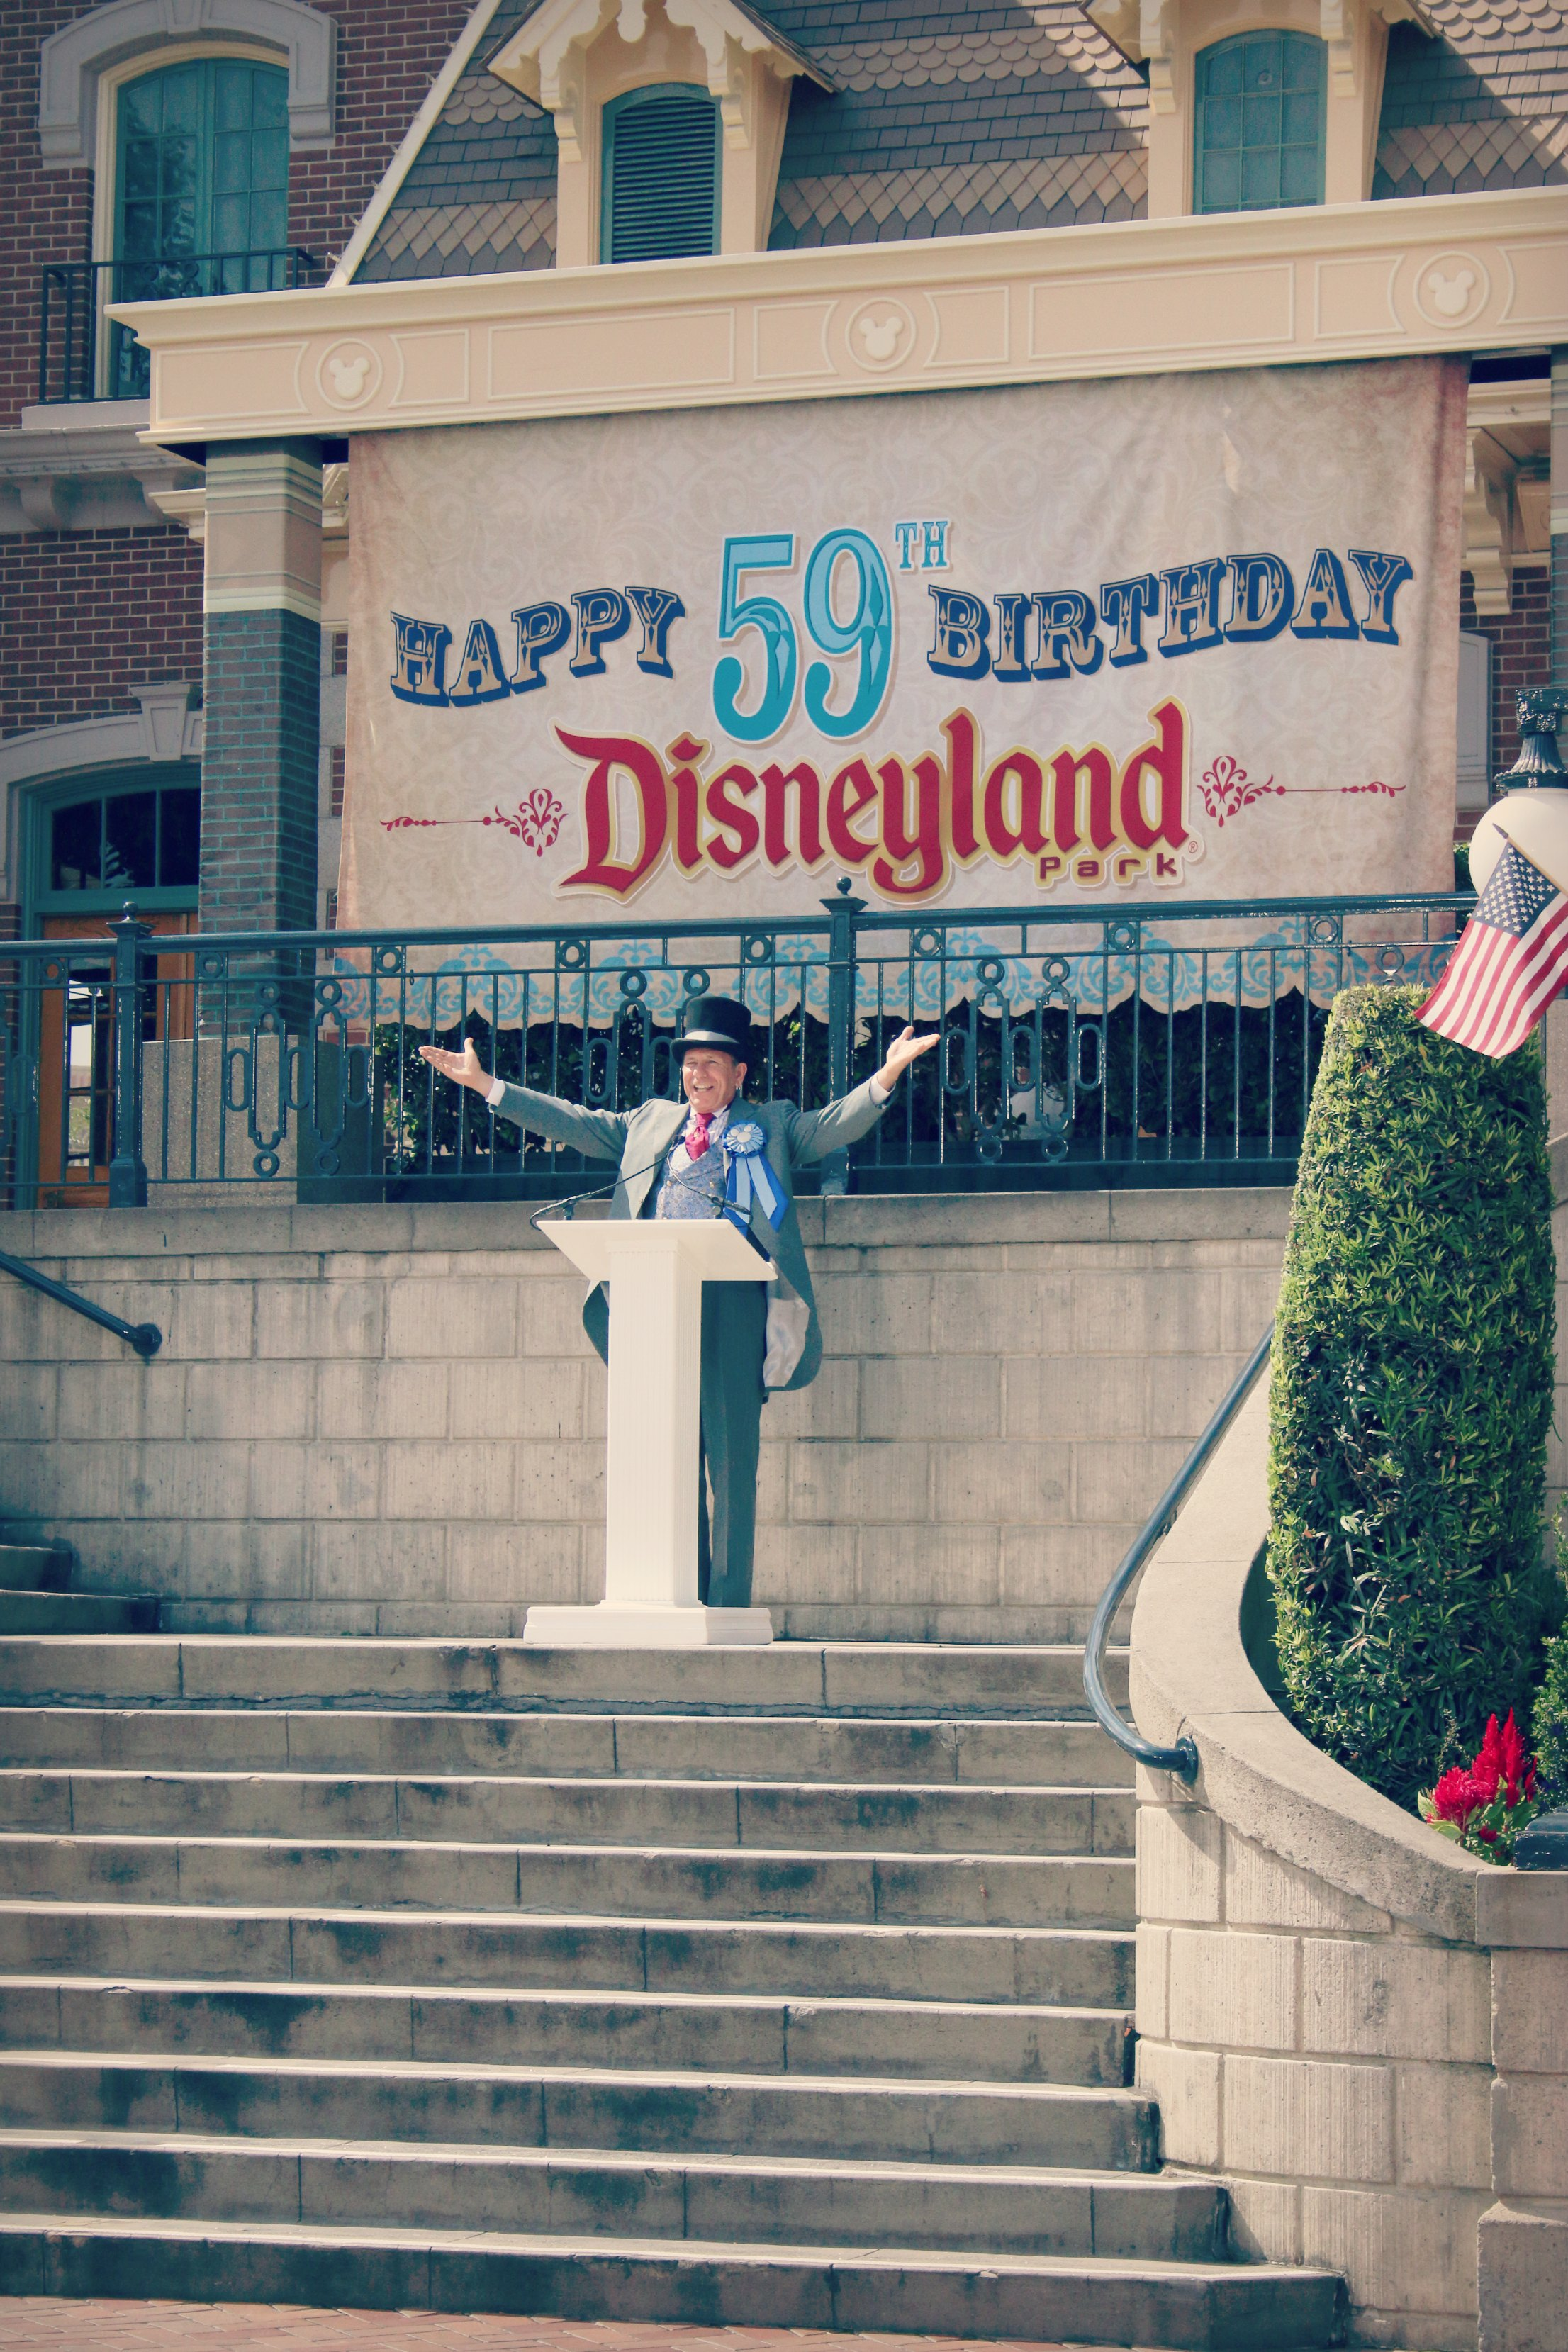 Disneyland 59th Birthday